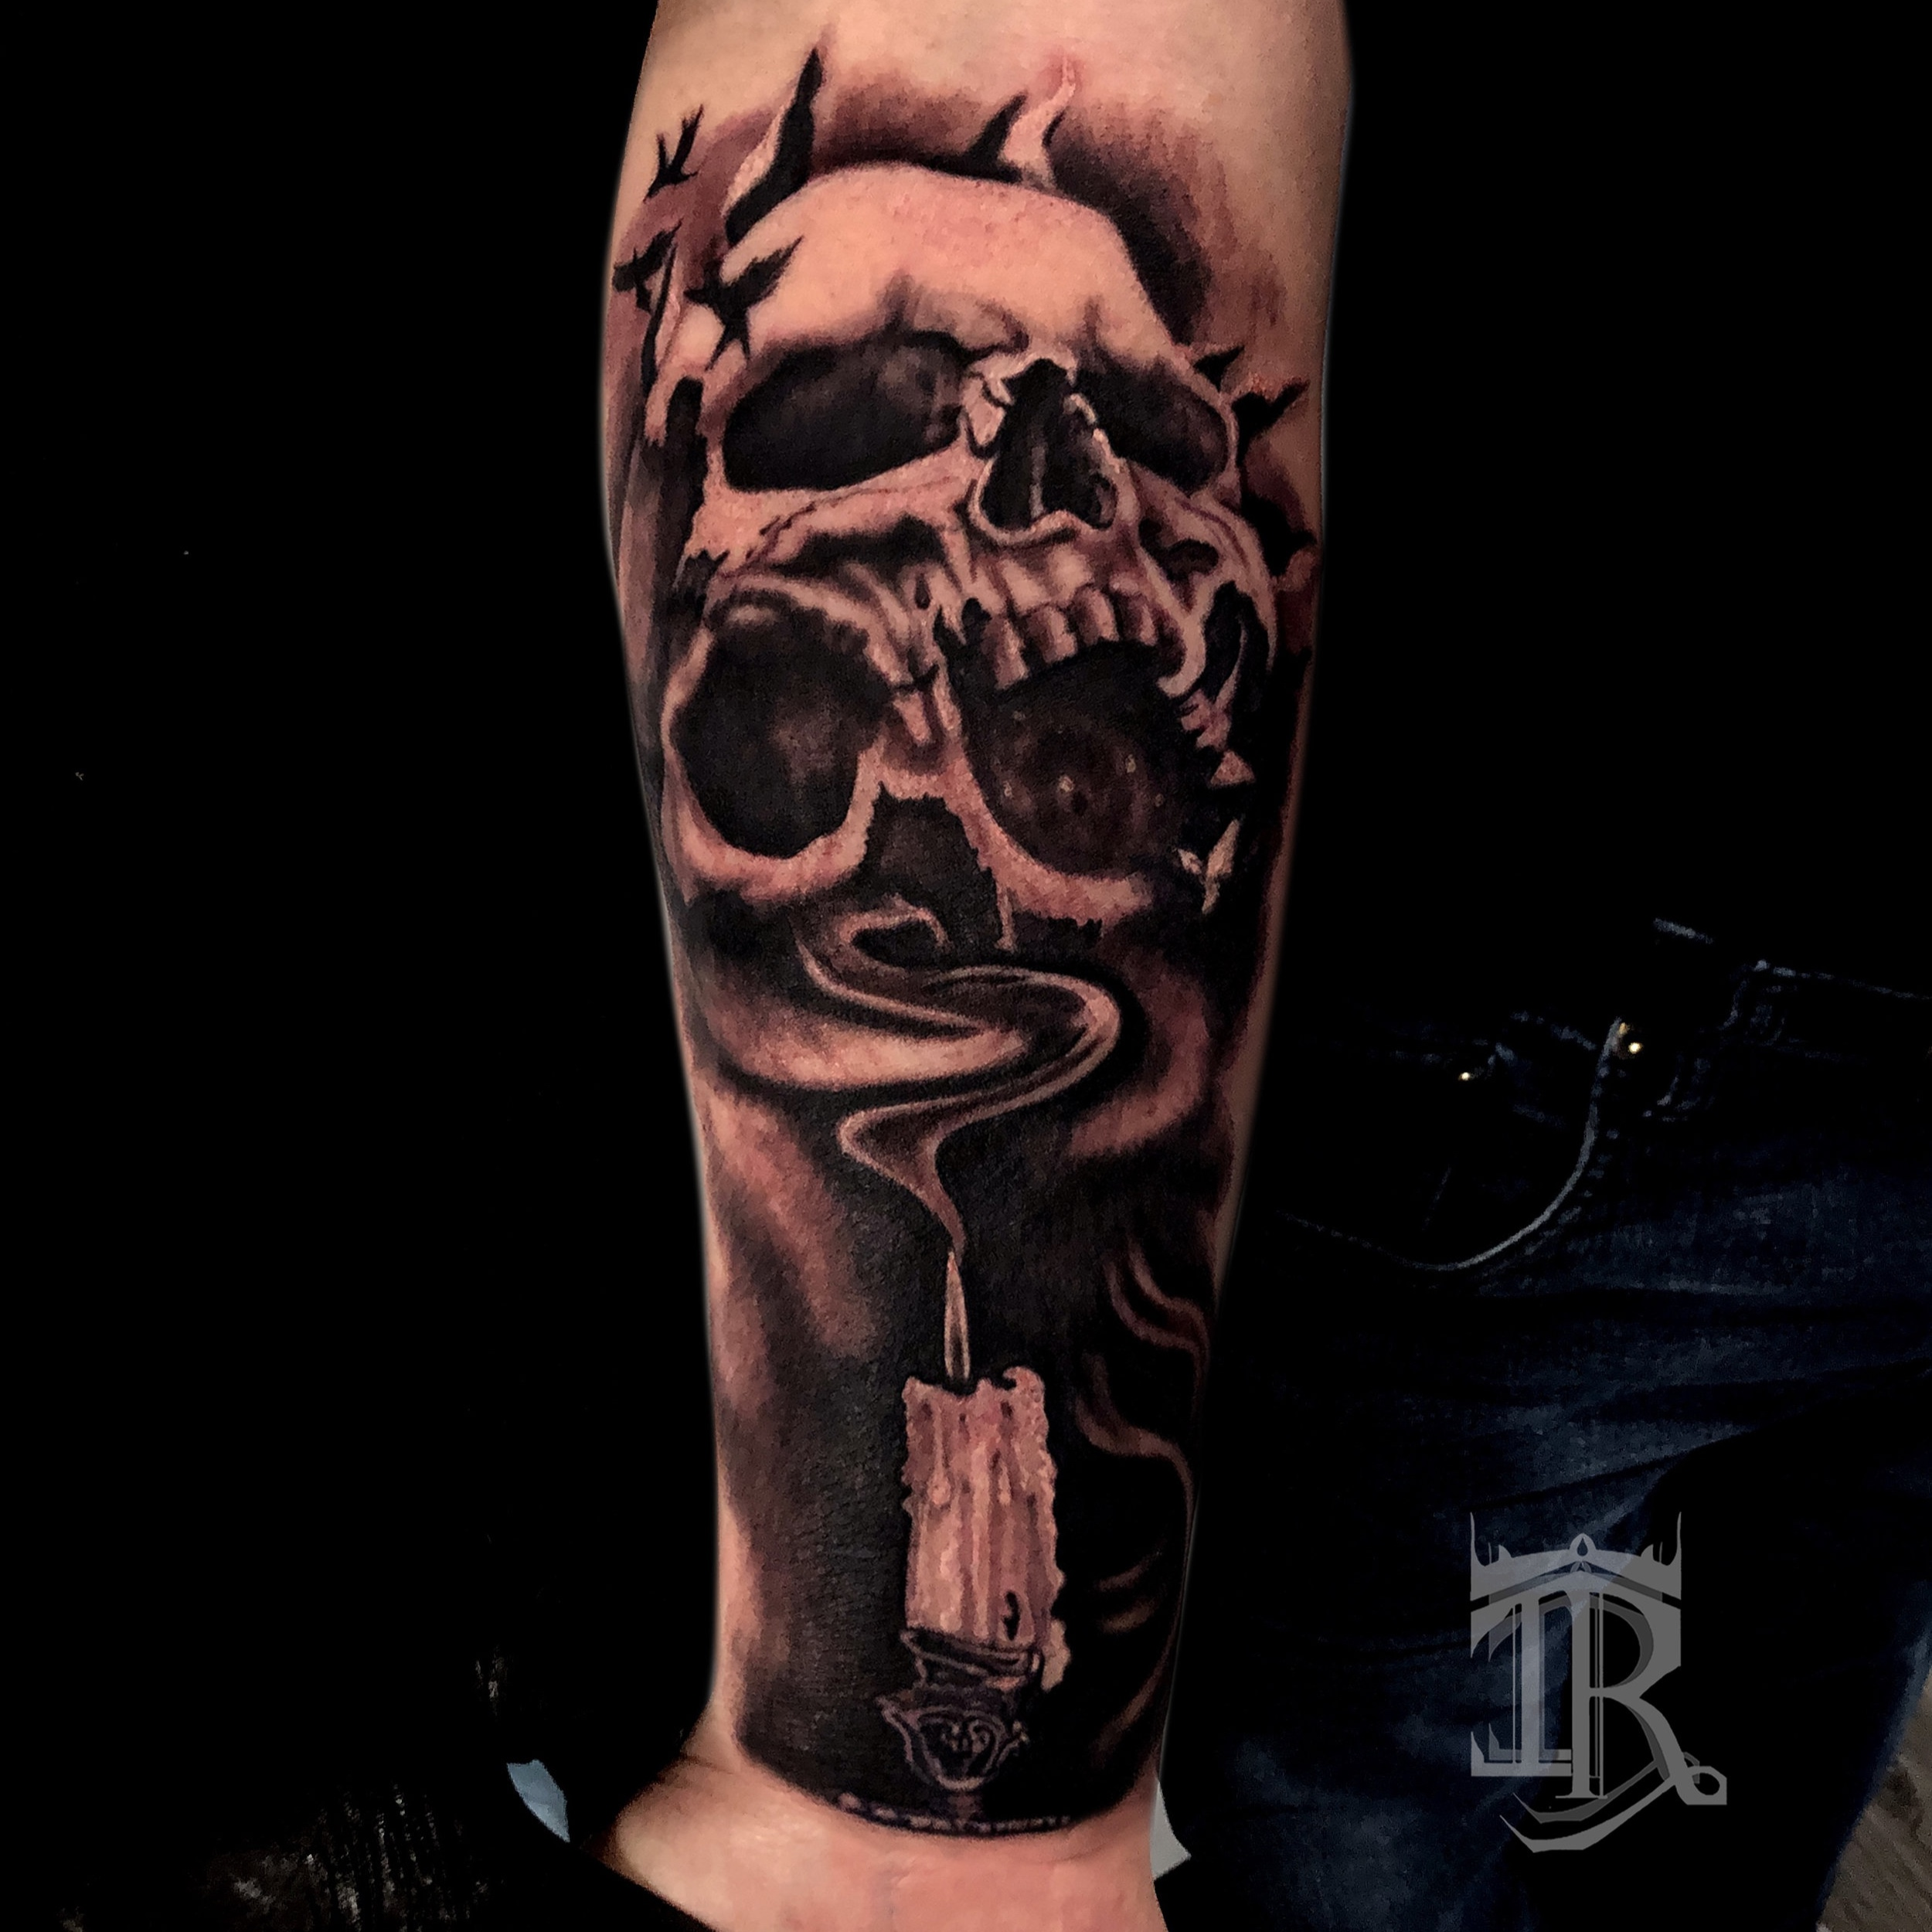 Skull Tattoo Ron Inkroom.jpg